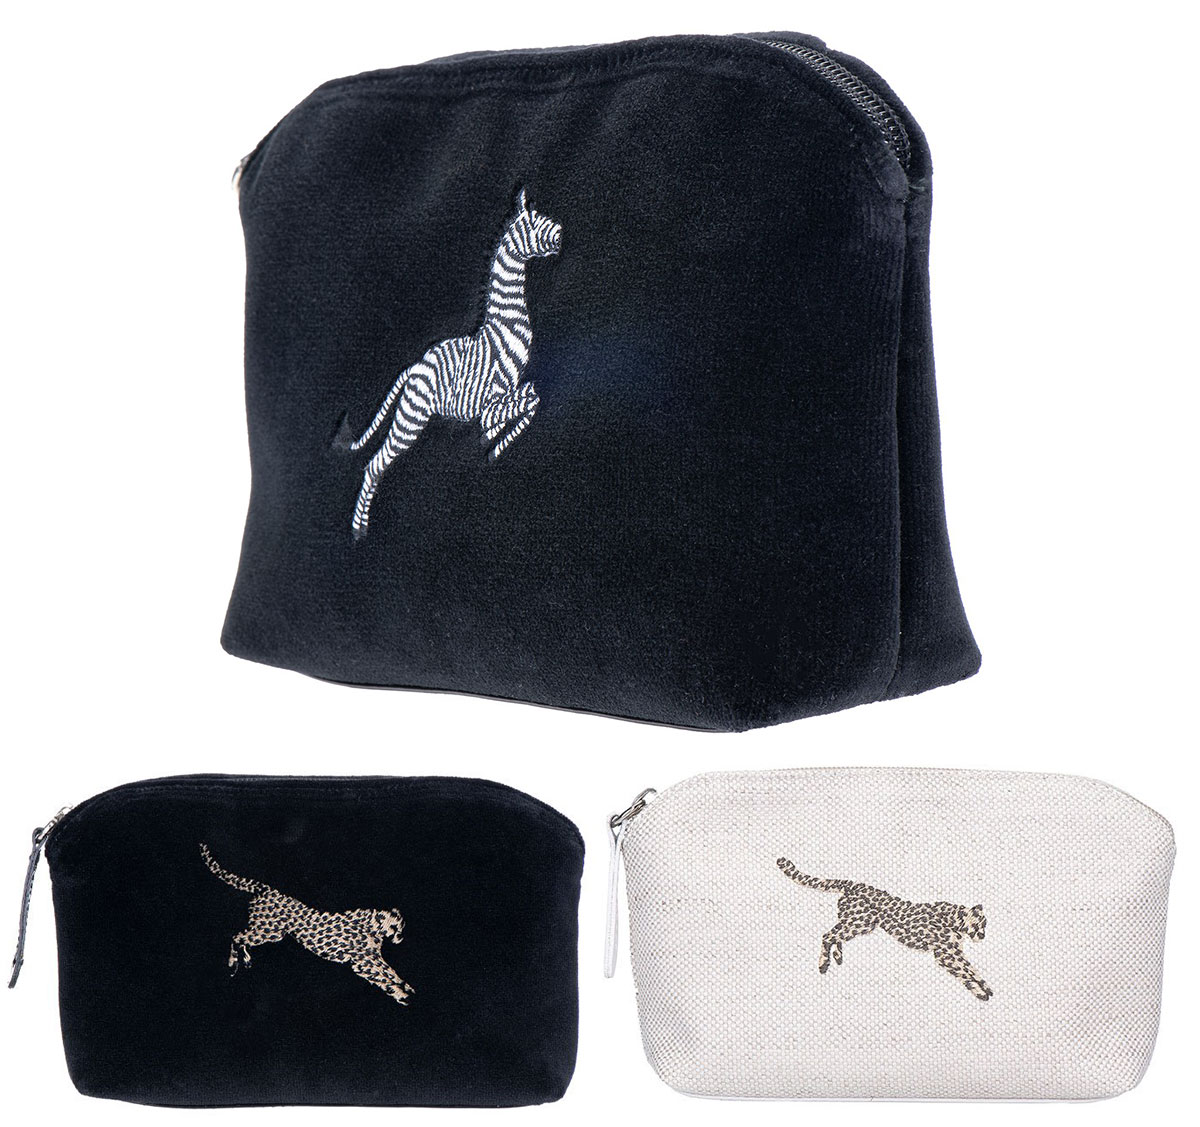 Leaping Cheetah and Zebra Pockets